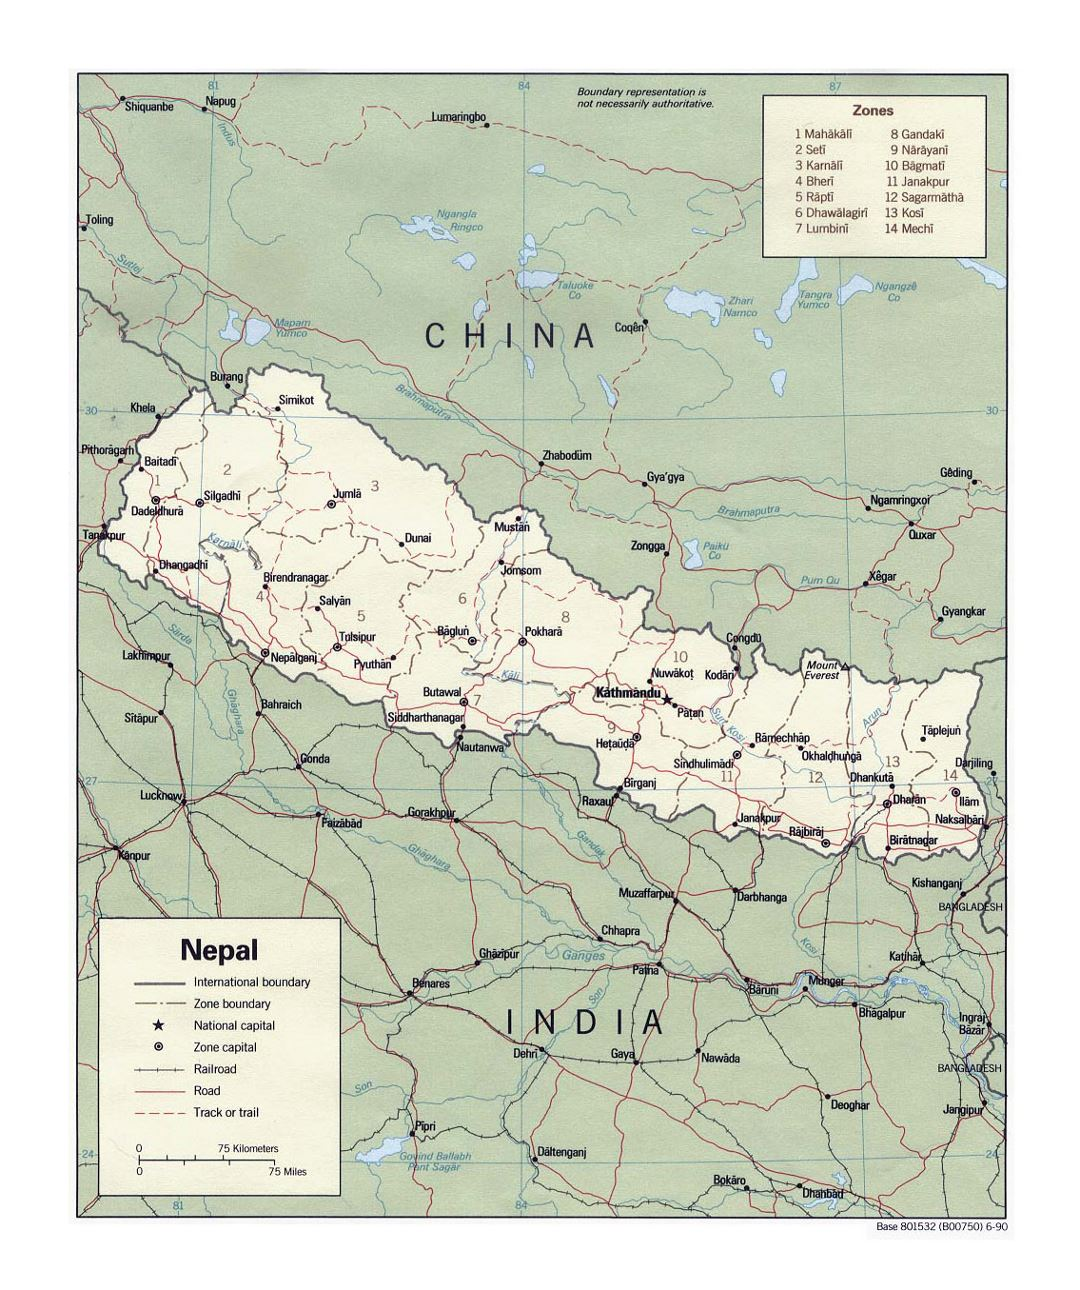 Detailed political and administrative map of Nepal with roads, railroads and major cities - 1990